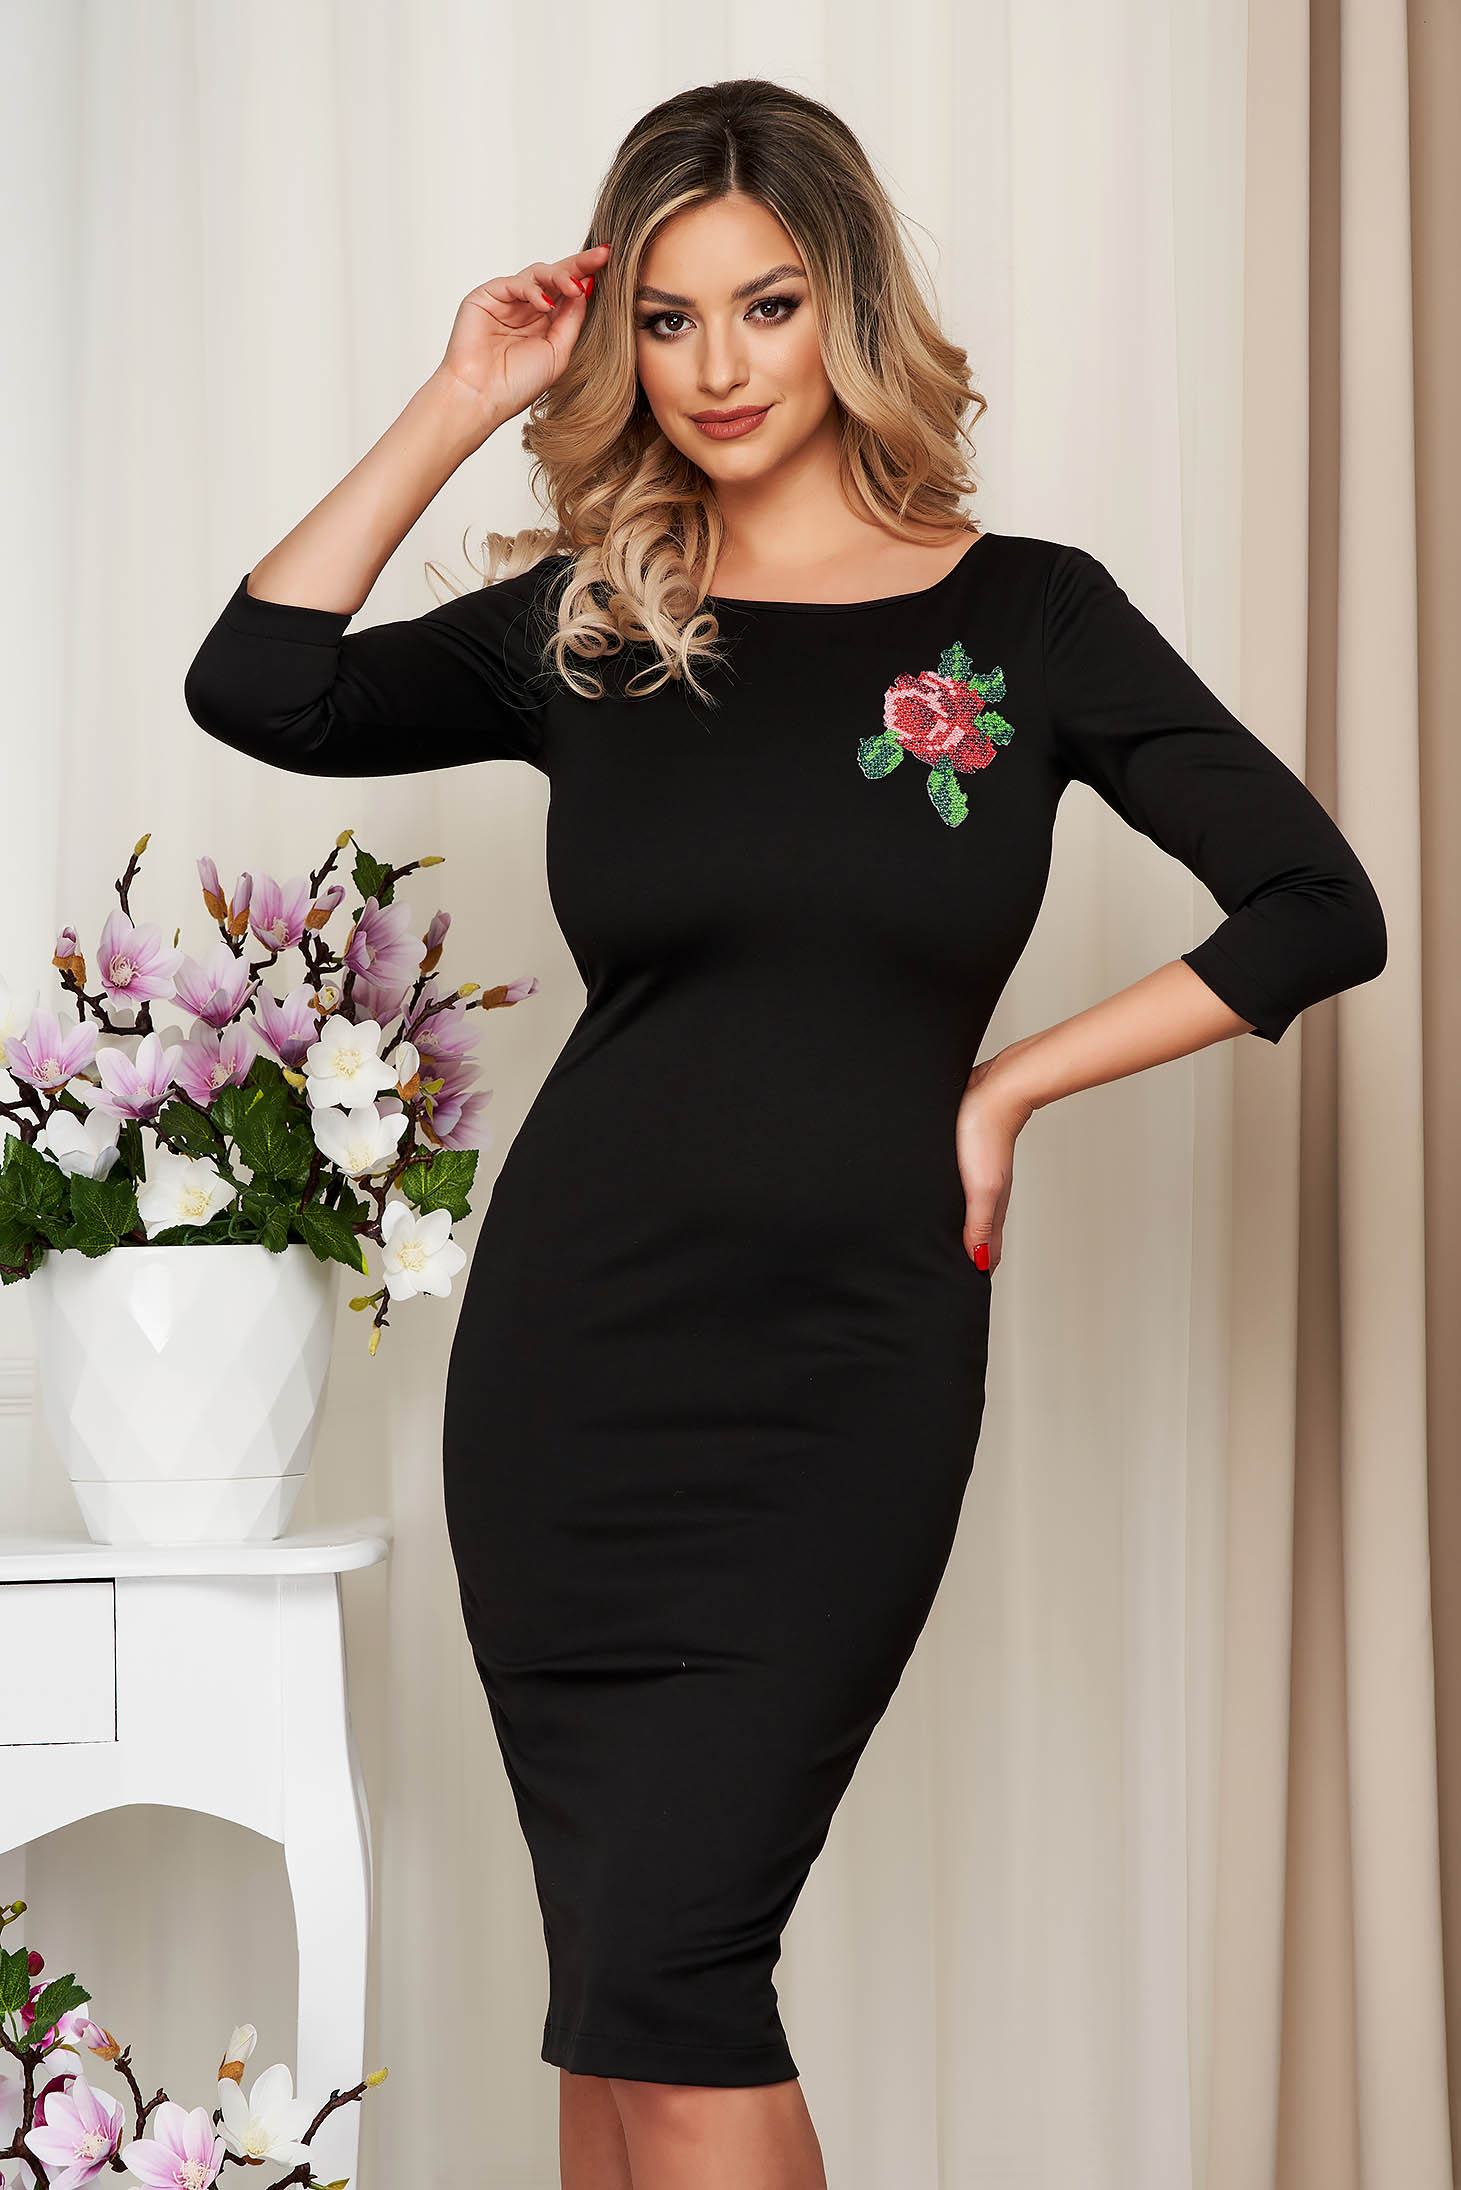 StarShinerS black elegant embroidered pencil dress flexible thin fabric/cloth with 3/4 sleeves